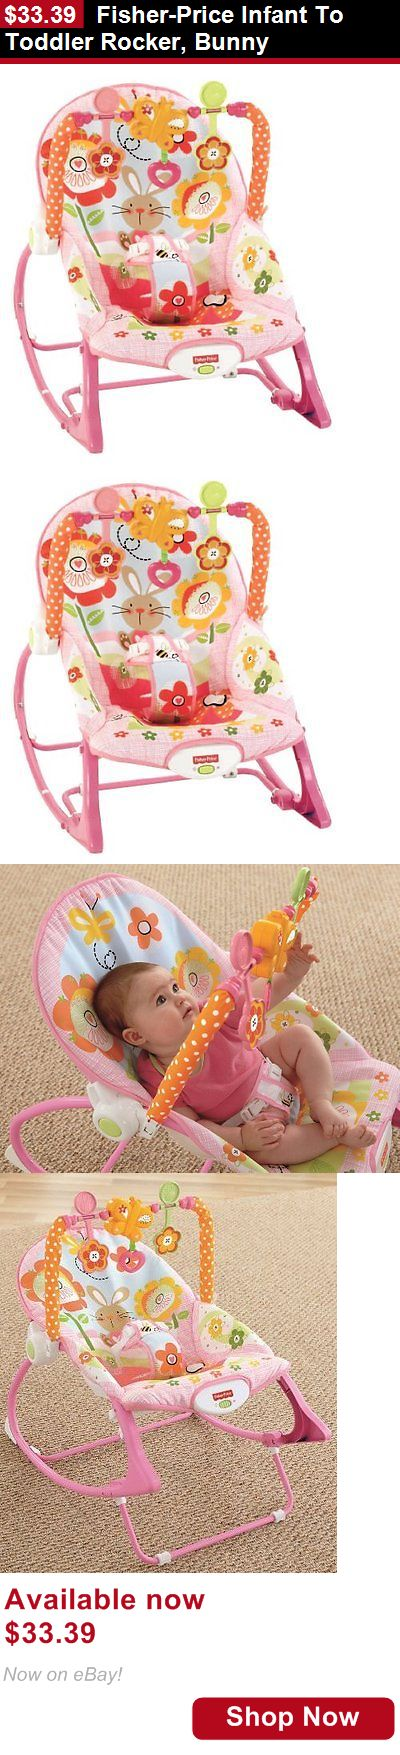 Baby bouncers and vibrating chairs: Fisher-Price Infant To Toddler Rocker, Bunny BUY IT NOW ONLY: $33.39